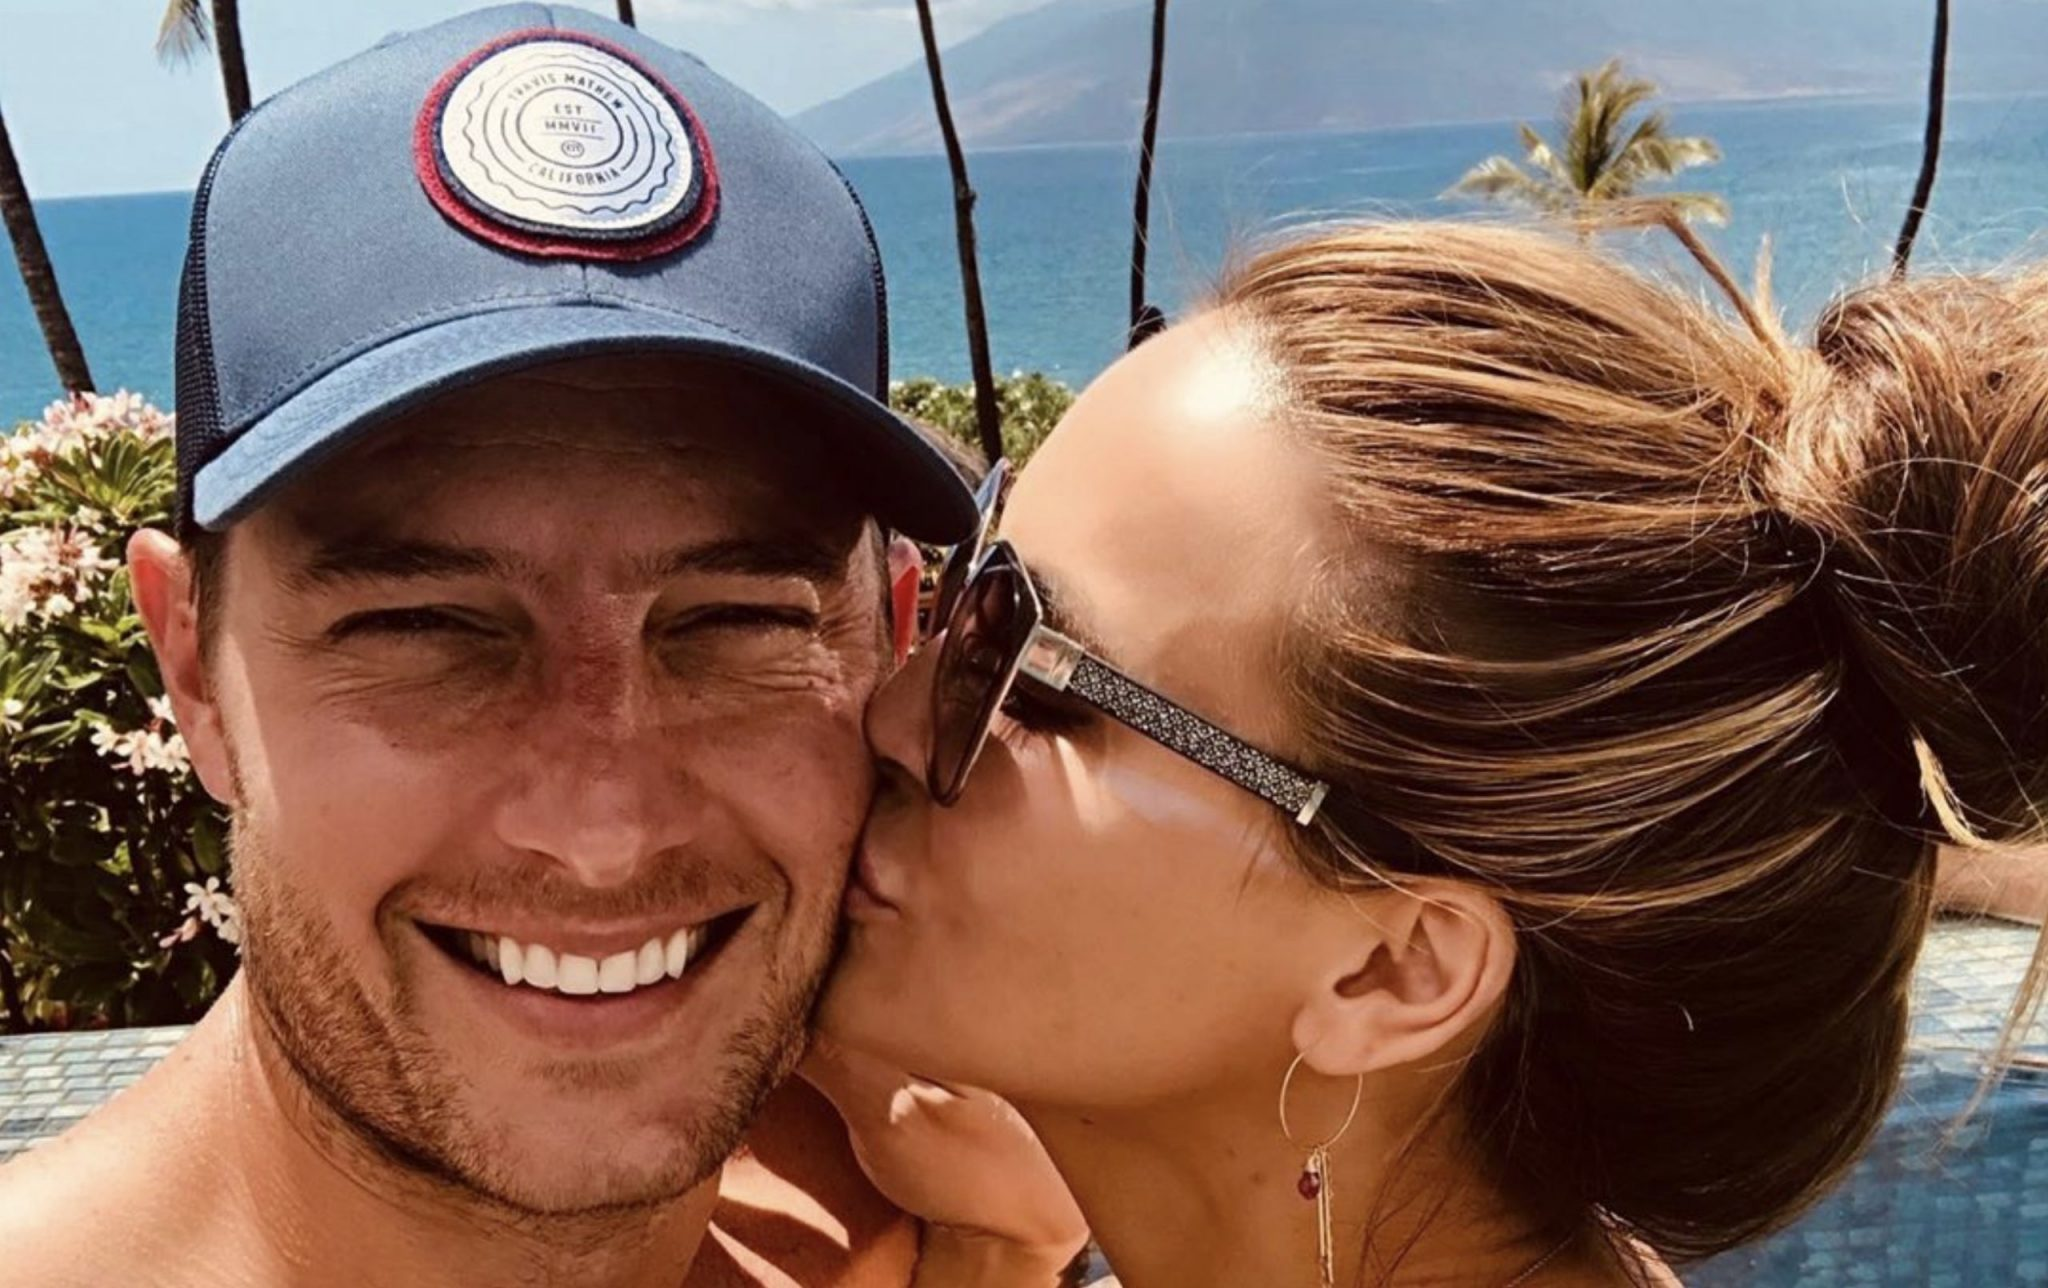 Justin Hartley, Chrishell Stause, Selling Sunset-https://www.instagram.com/p/By5pIwEnkxu/